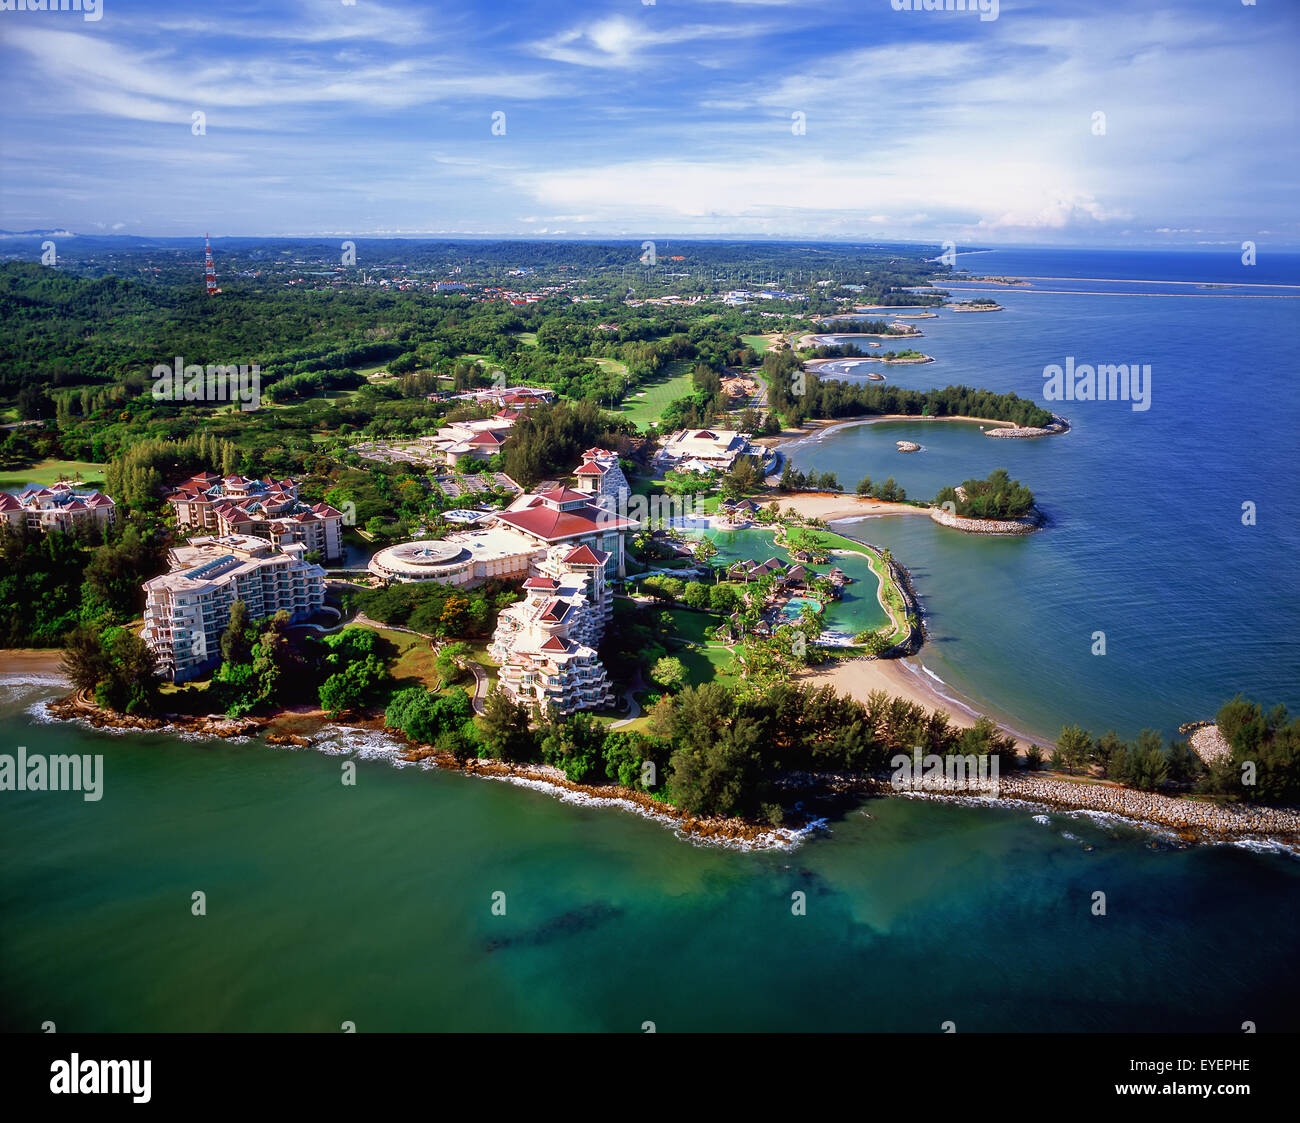 Aerial view of the Empire Hotel and Country Club; Bandar Seri Begawan, Brunei - Stock Image